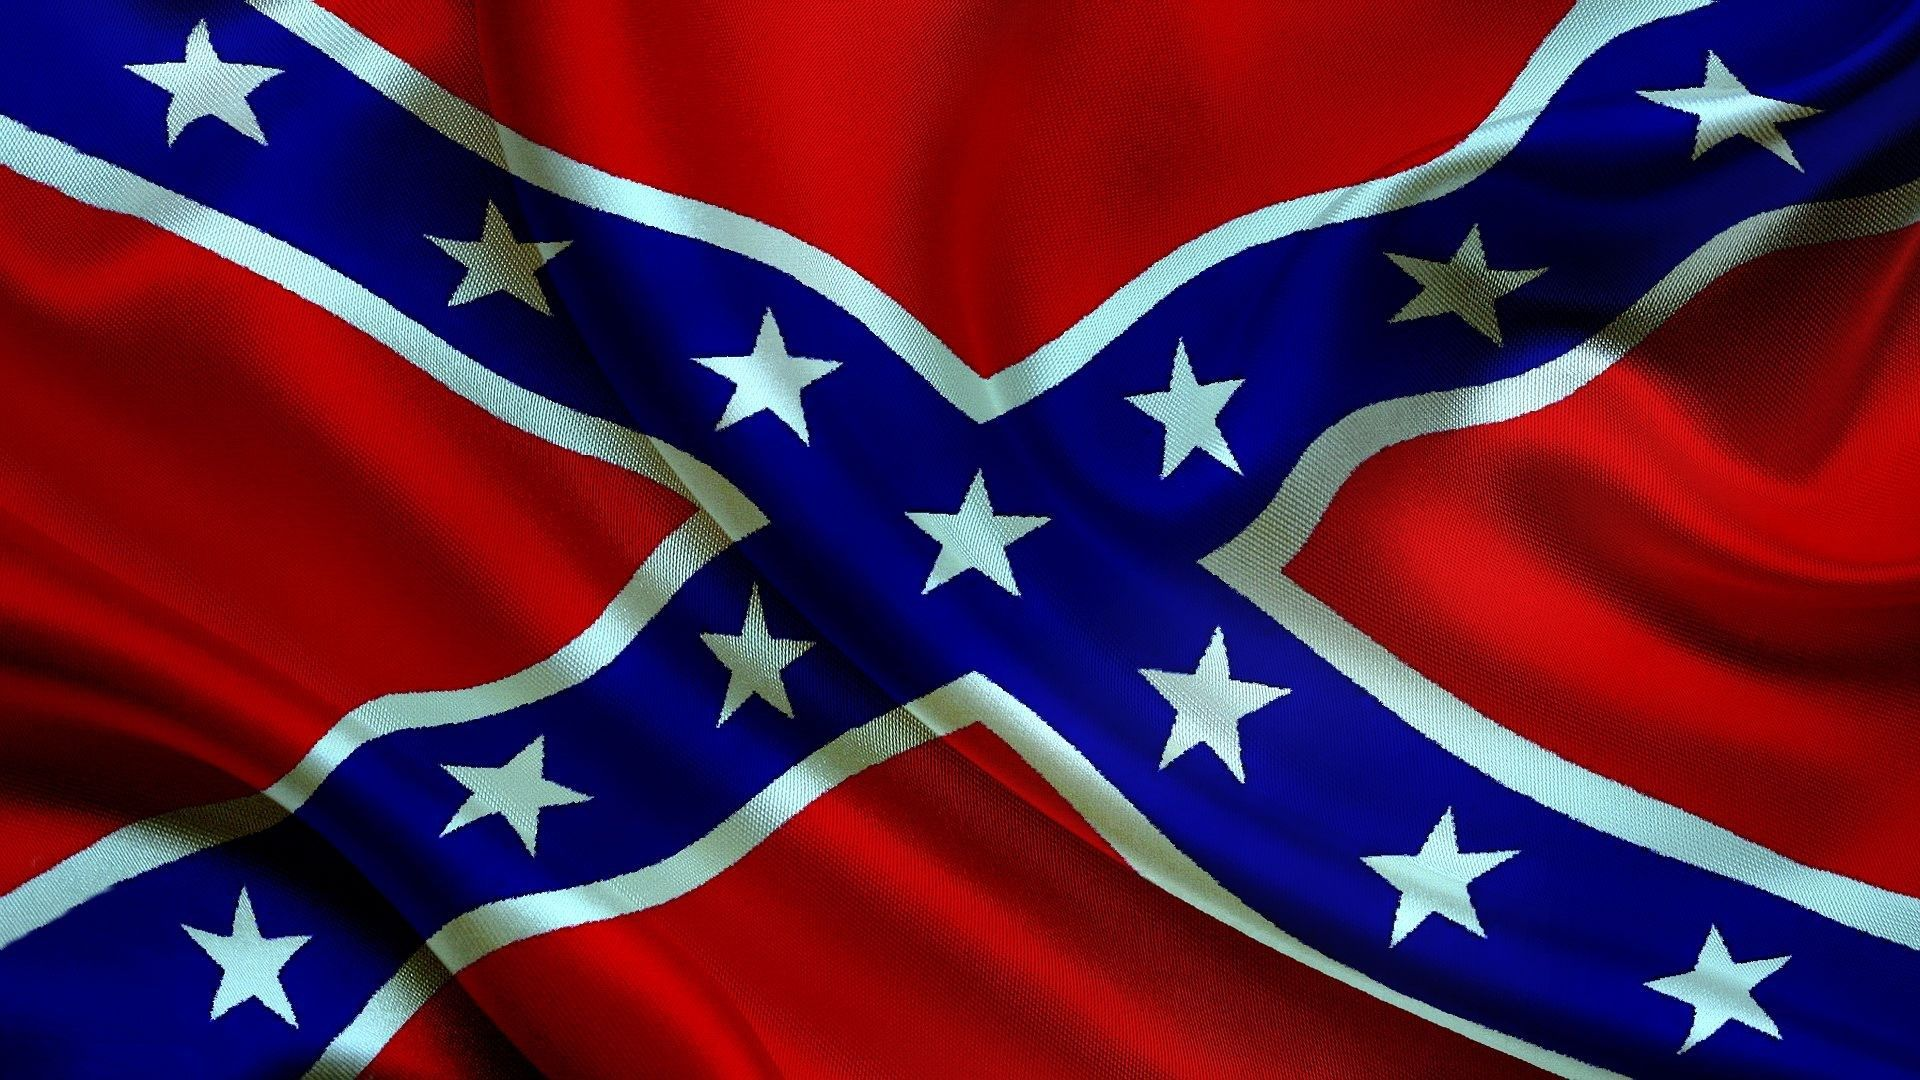 confederate flag image free, Manford Gill 2016-04-25